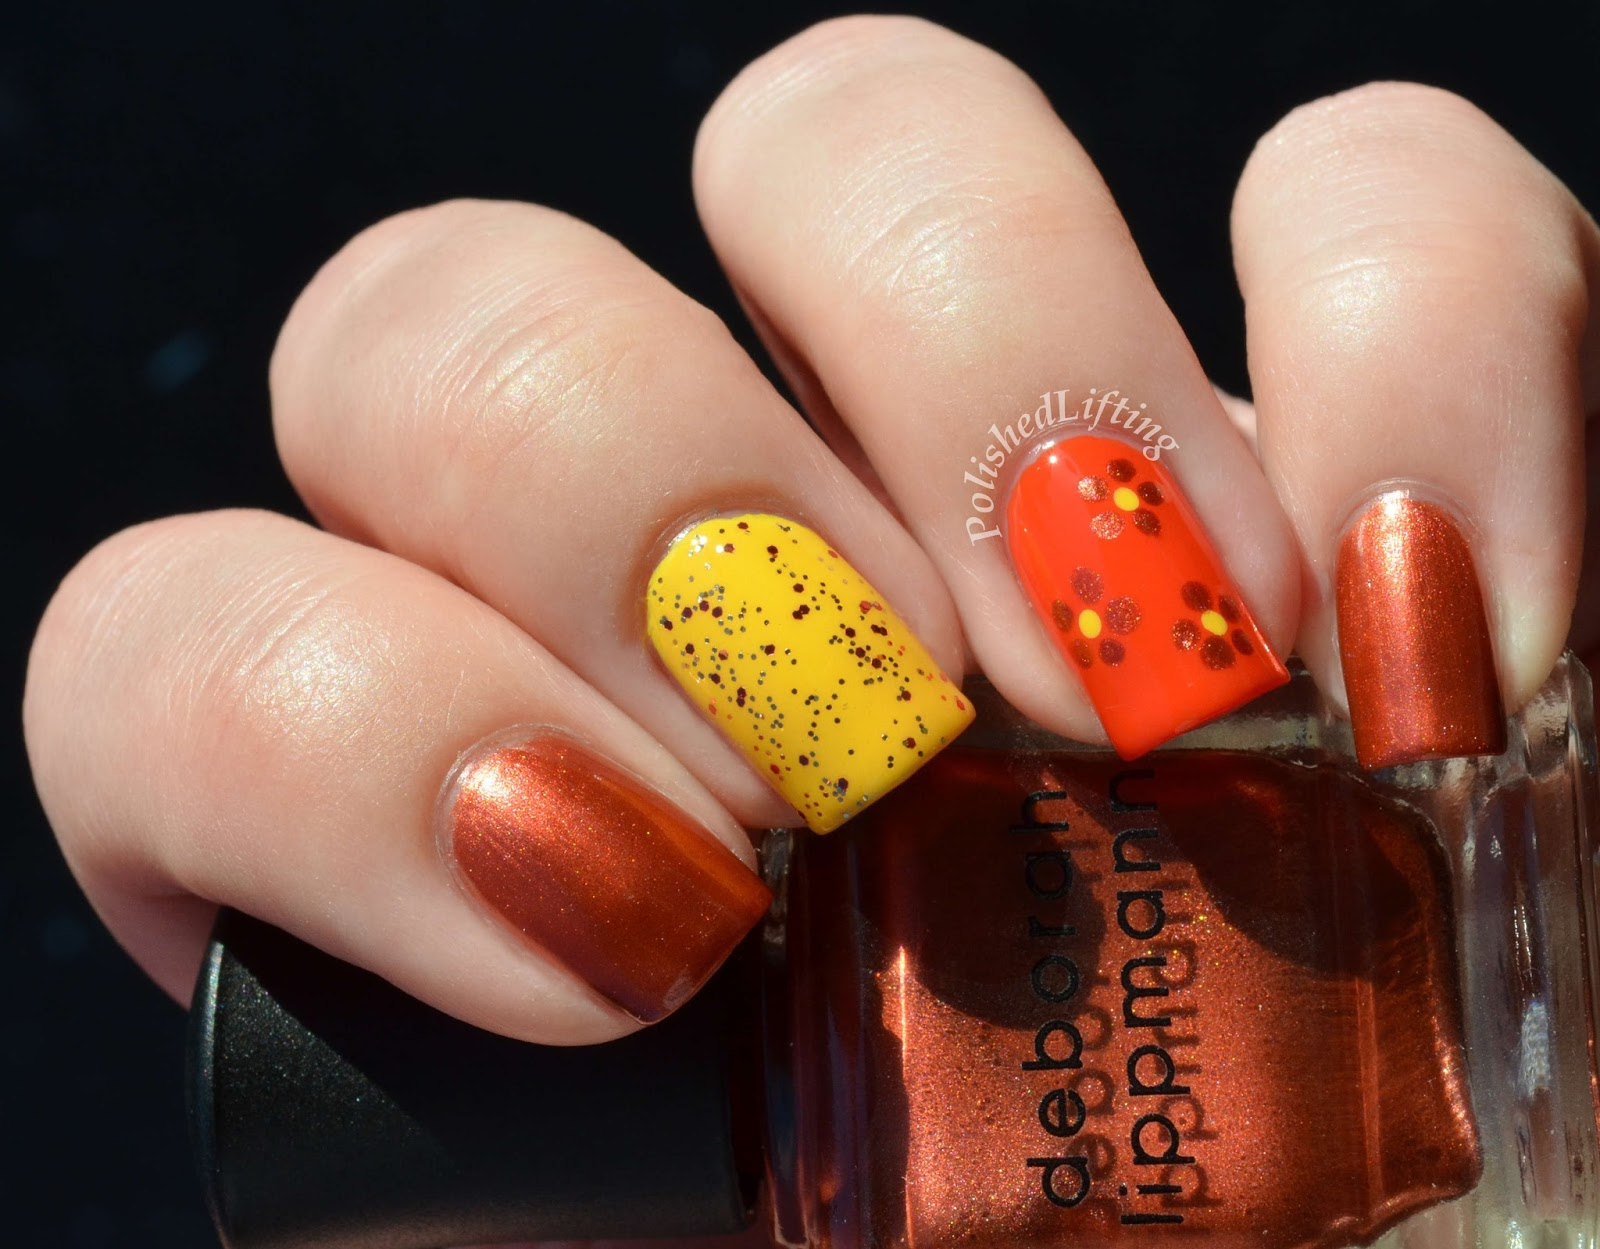 Deborah Lippmann Brick House Walking on Sunshine Don't Stop Believin' Sinful Colors Pumpkin Spice